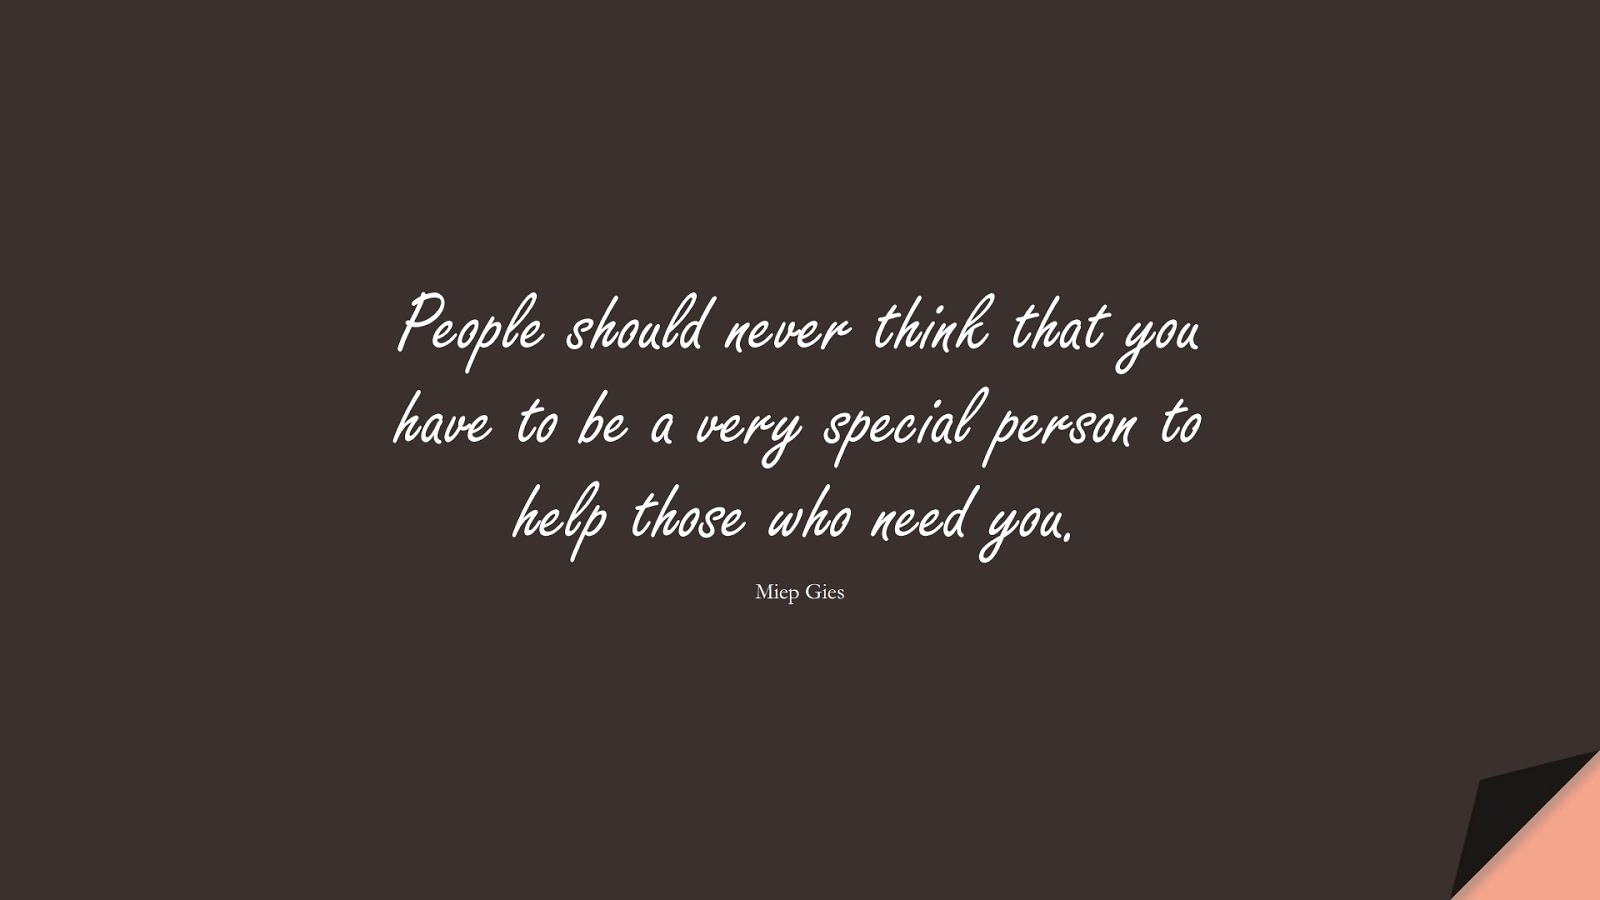 People should never think that you have to be a very special person to help those who need you. (Miep Gies);  #HumanityQuotes